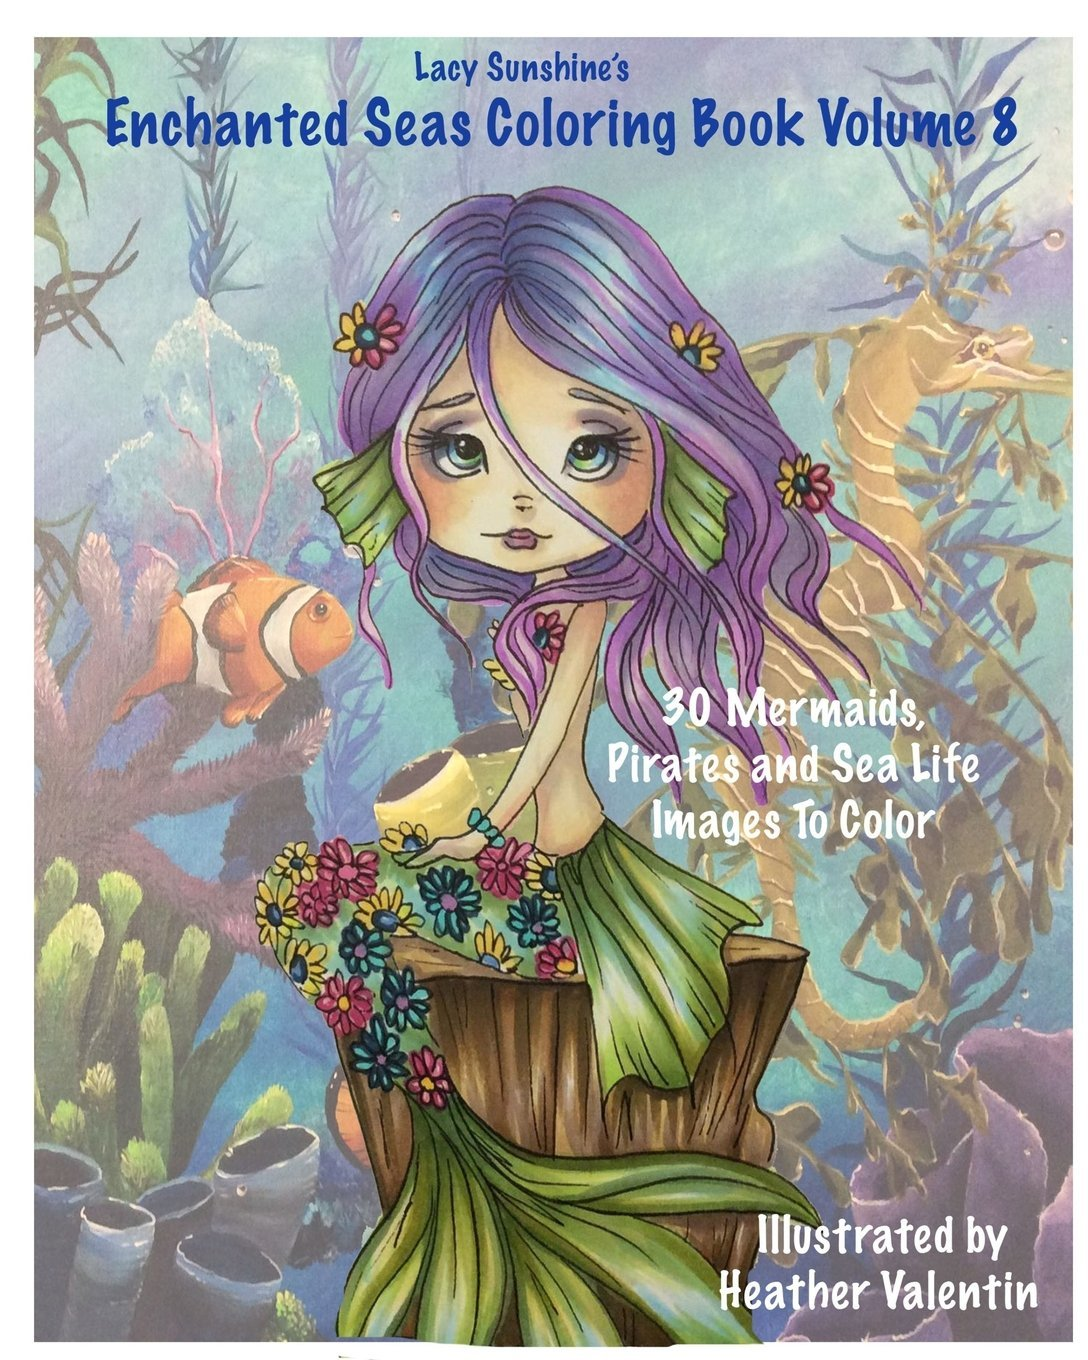 Lacy Sunshines Enchanted Seas Coloring Book Volume 8 Mermaids Pirates And Sea Life Sunshine Heather Valentin 9781533430526